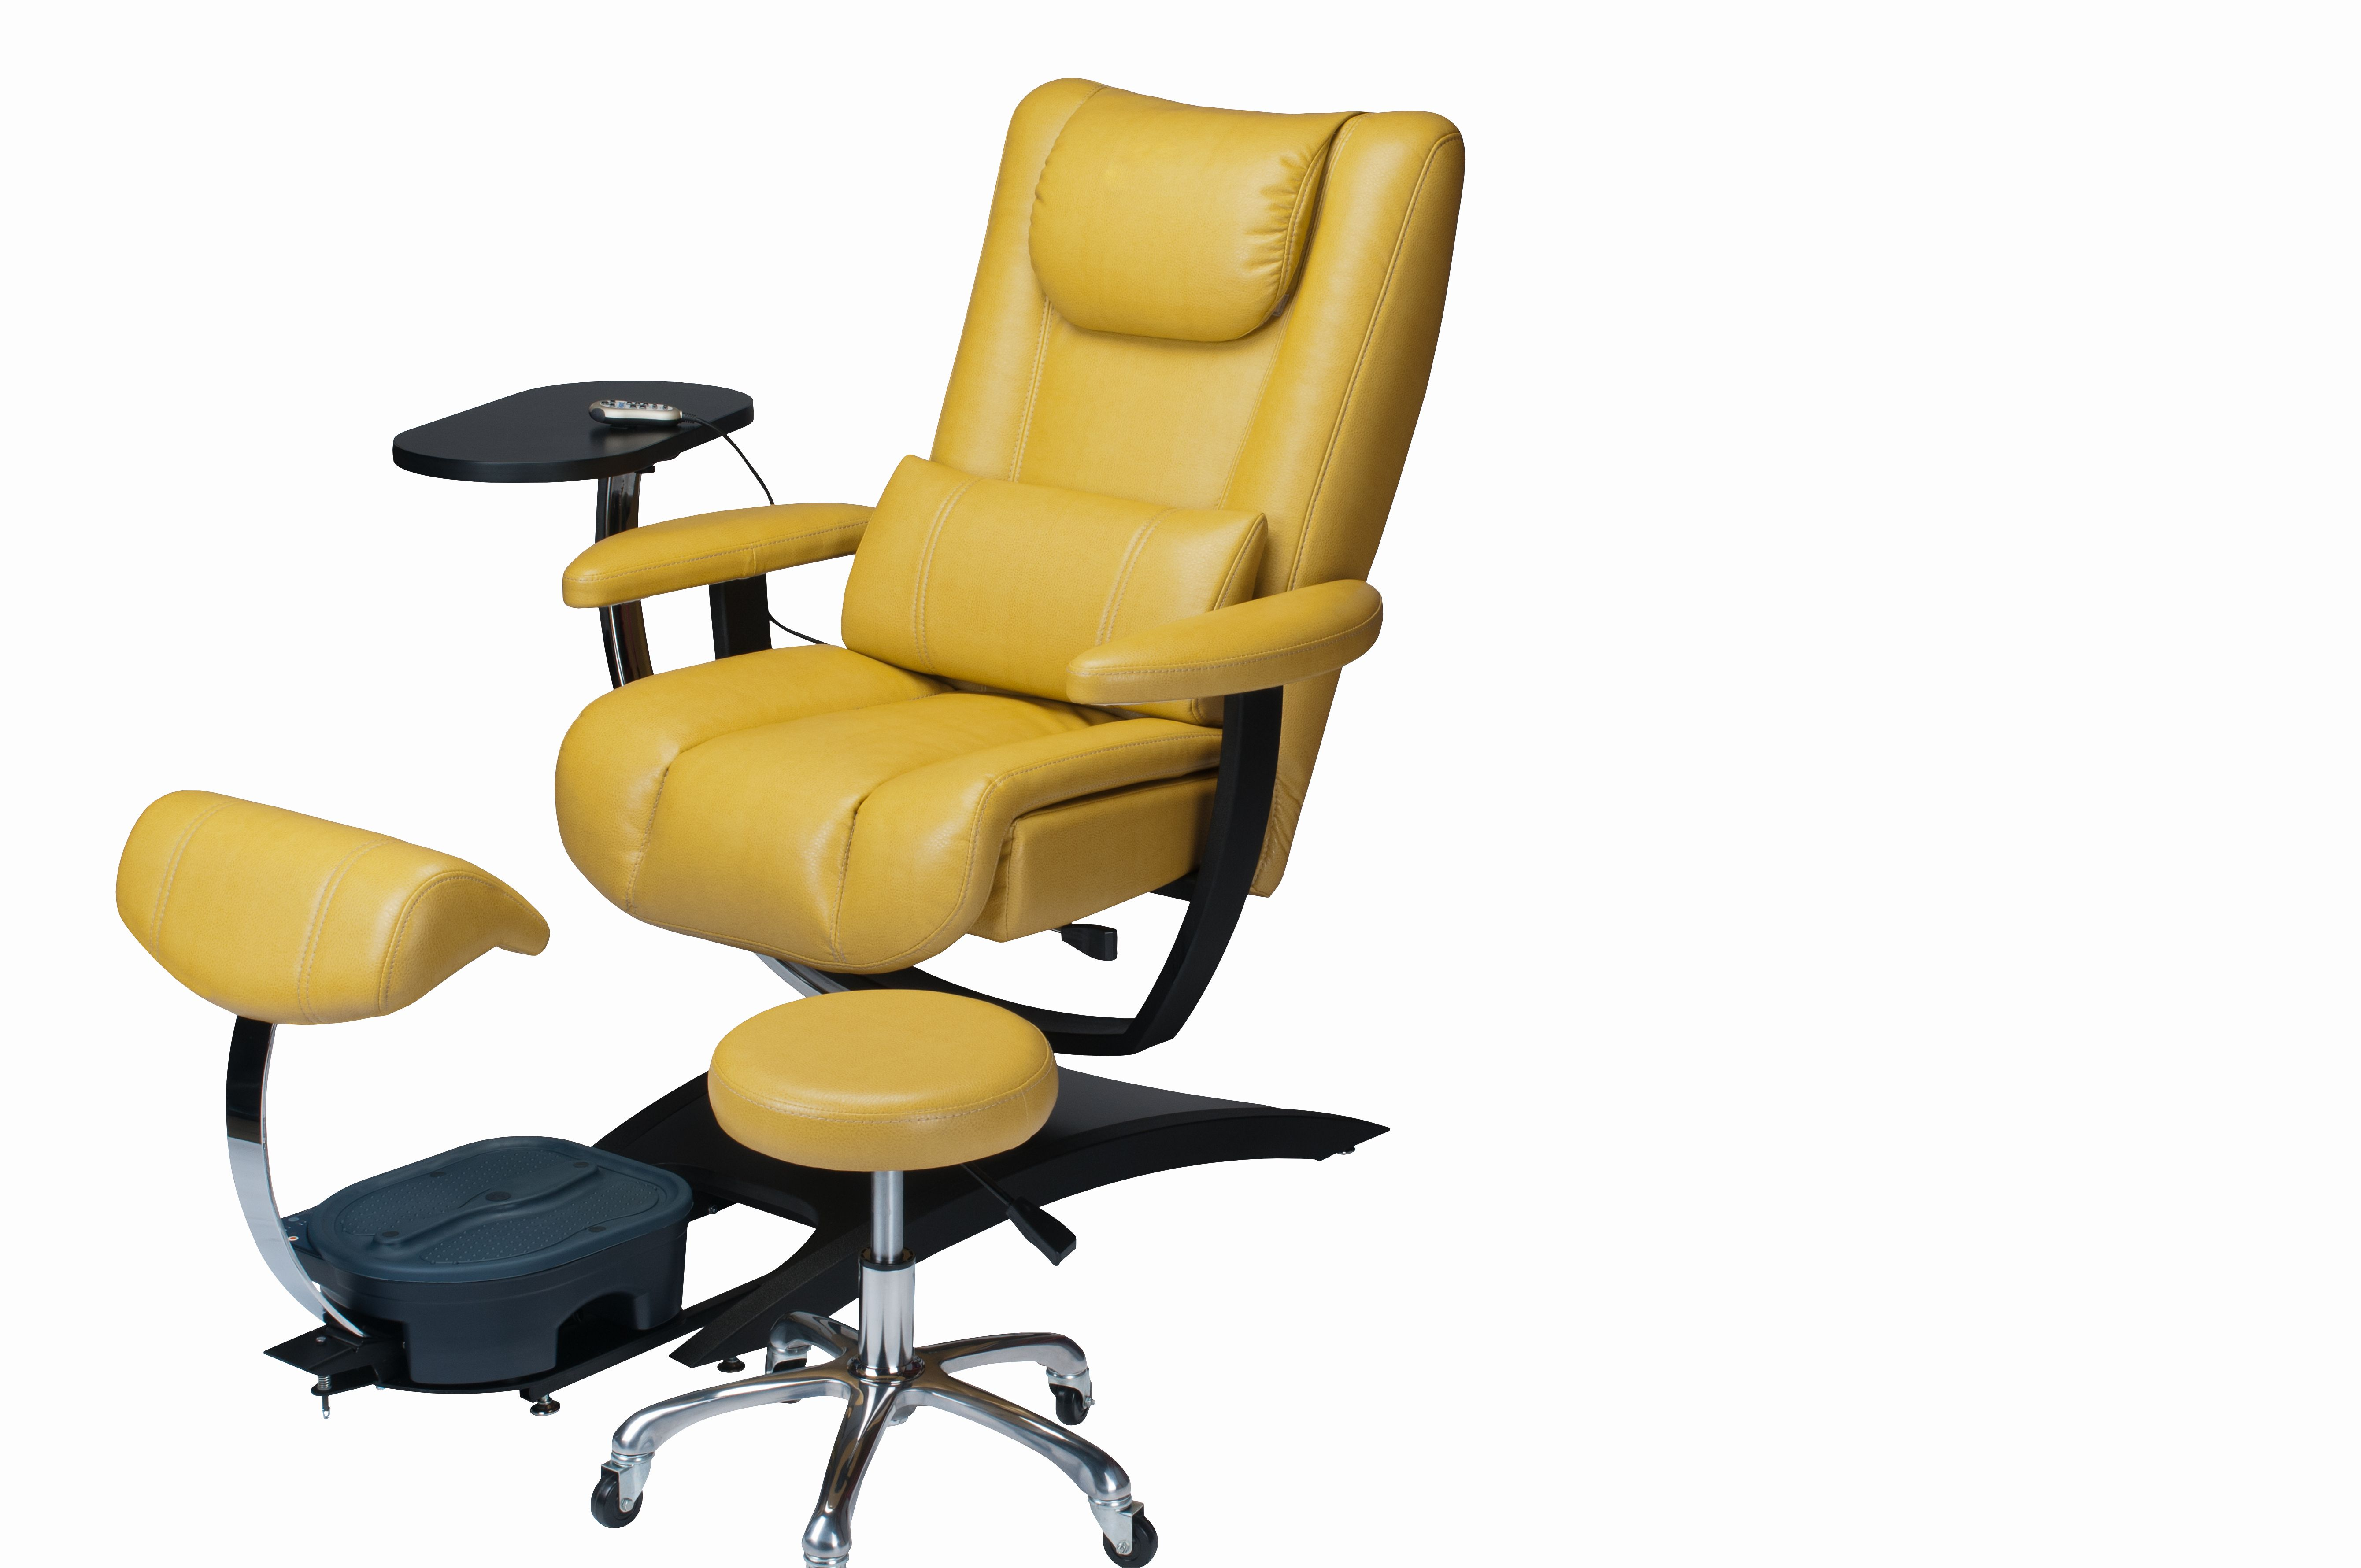 Belava Pedicure Chair Endless Custom Color Choices No Plumbing Pedicure